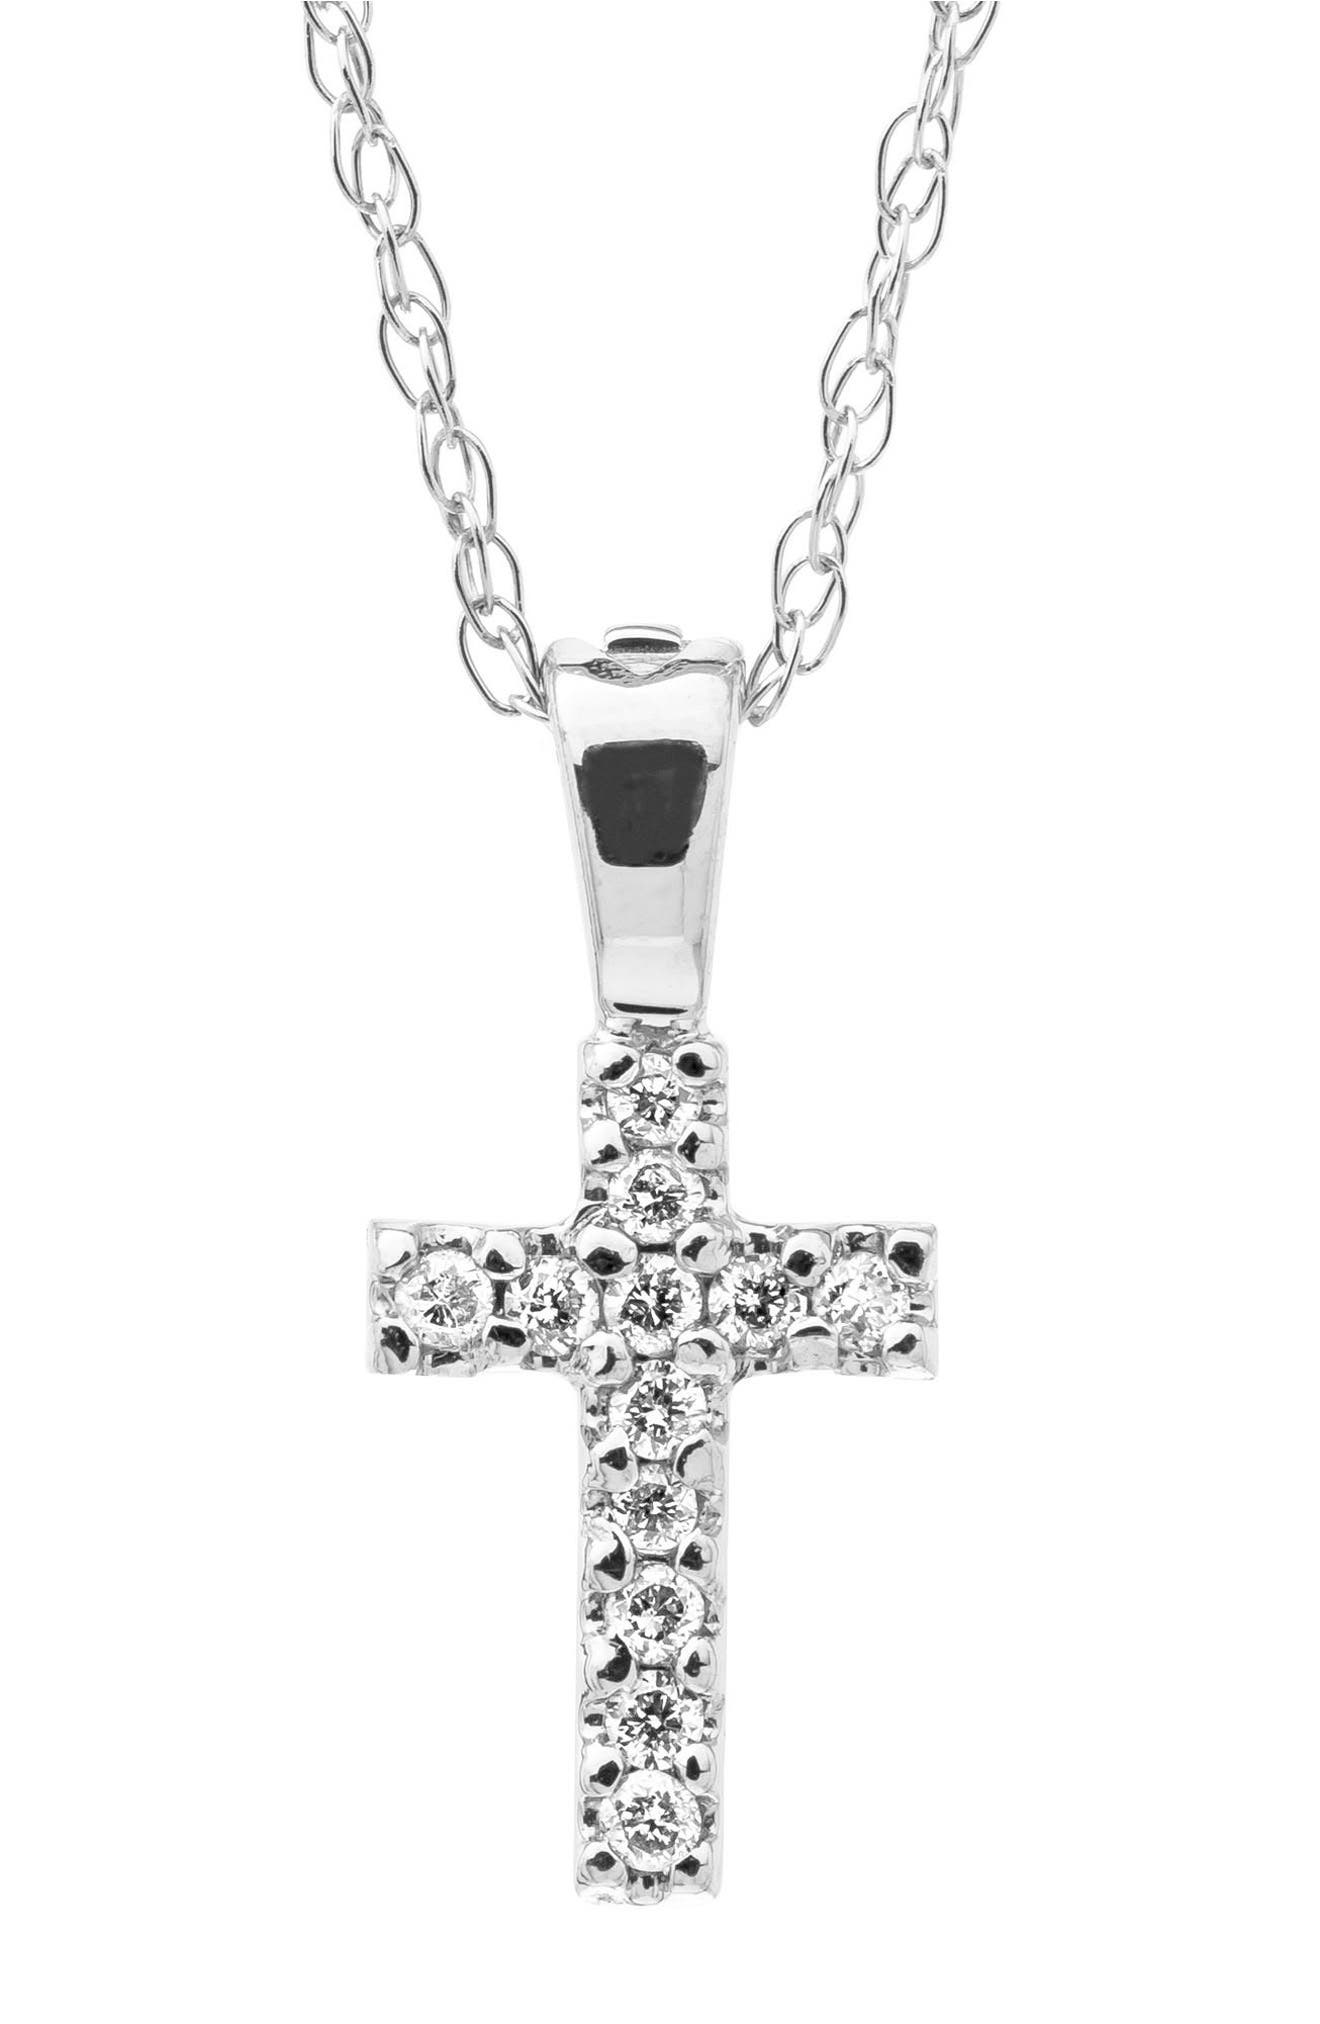 MIGNONETTE 14k White Gold & Diamond Cross Necklace